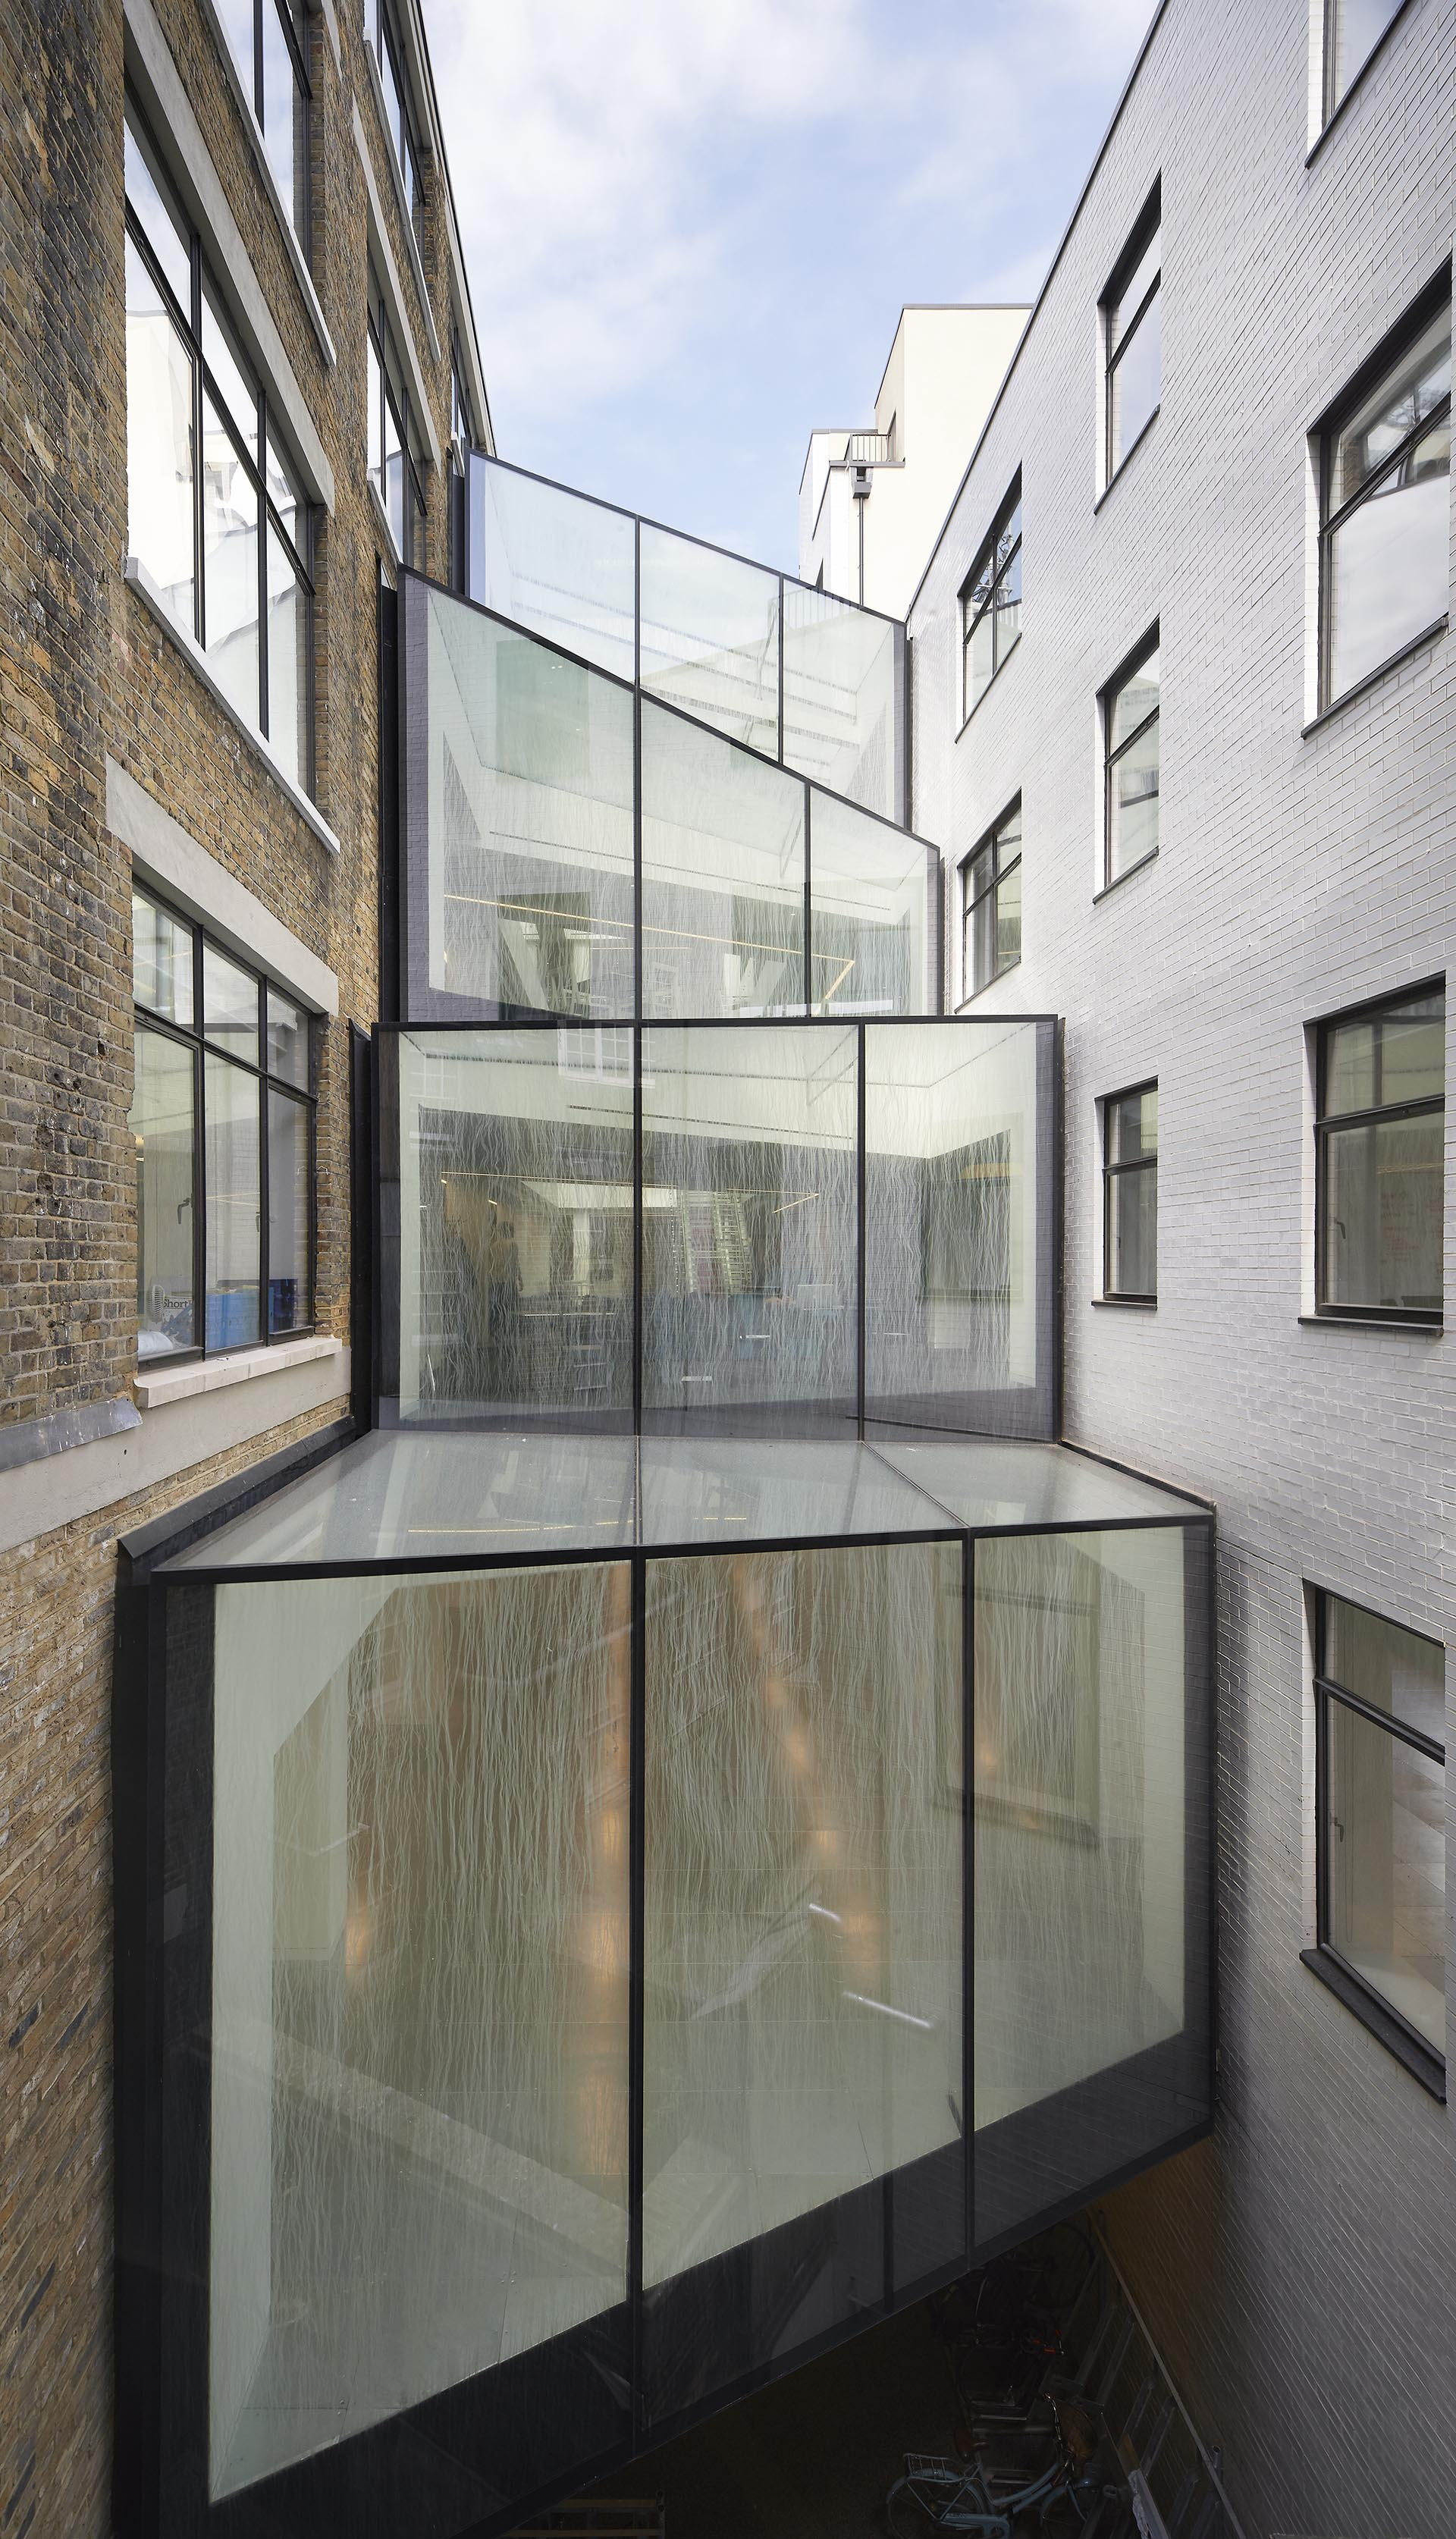 82 Baker Street by Marks Barfield Architects